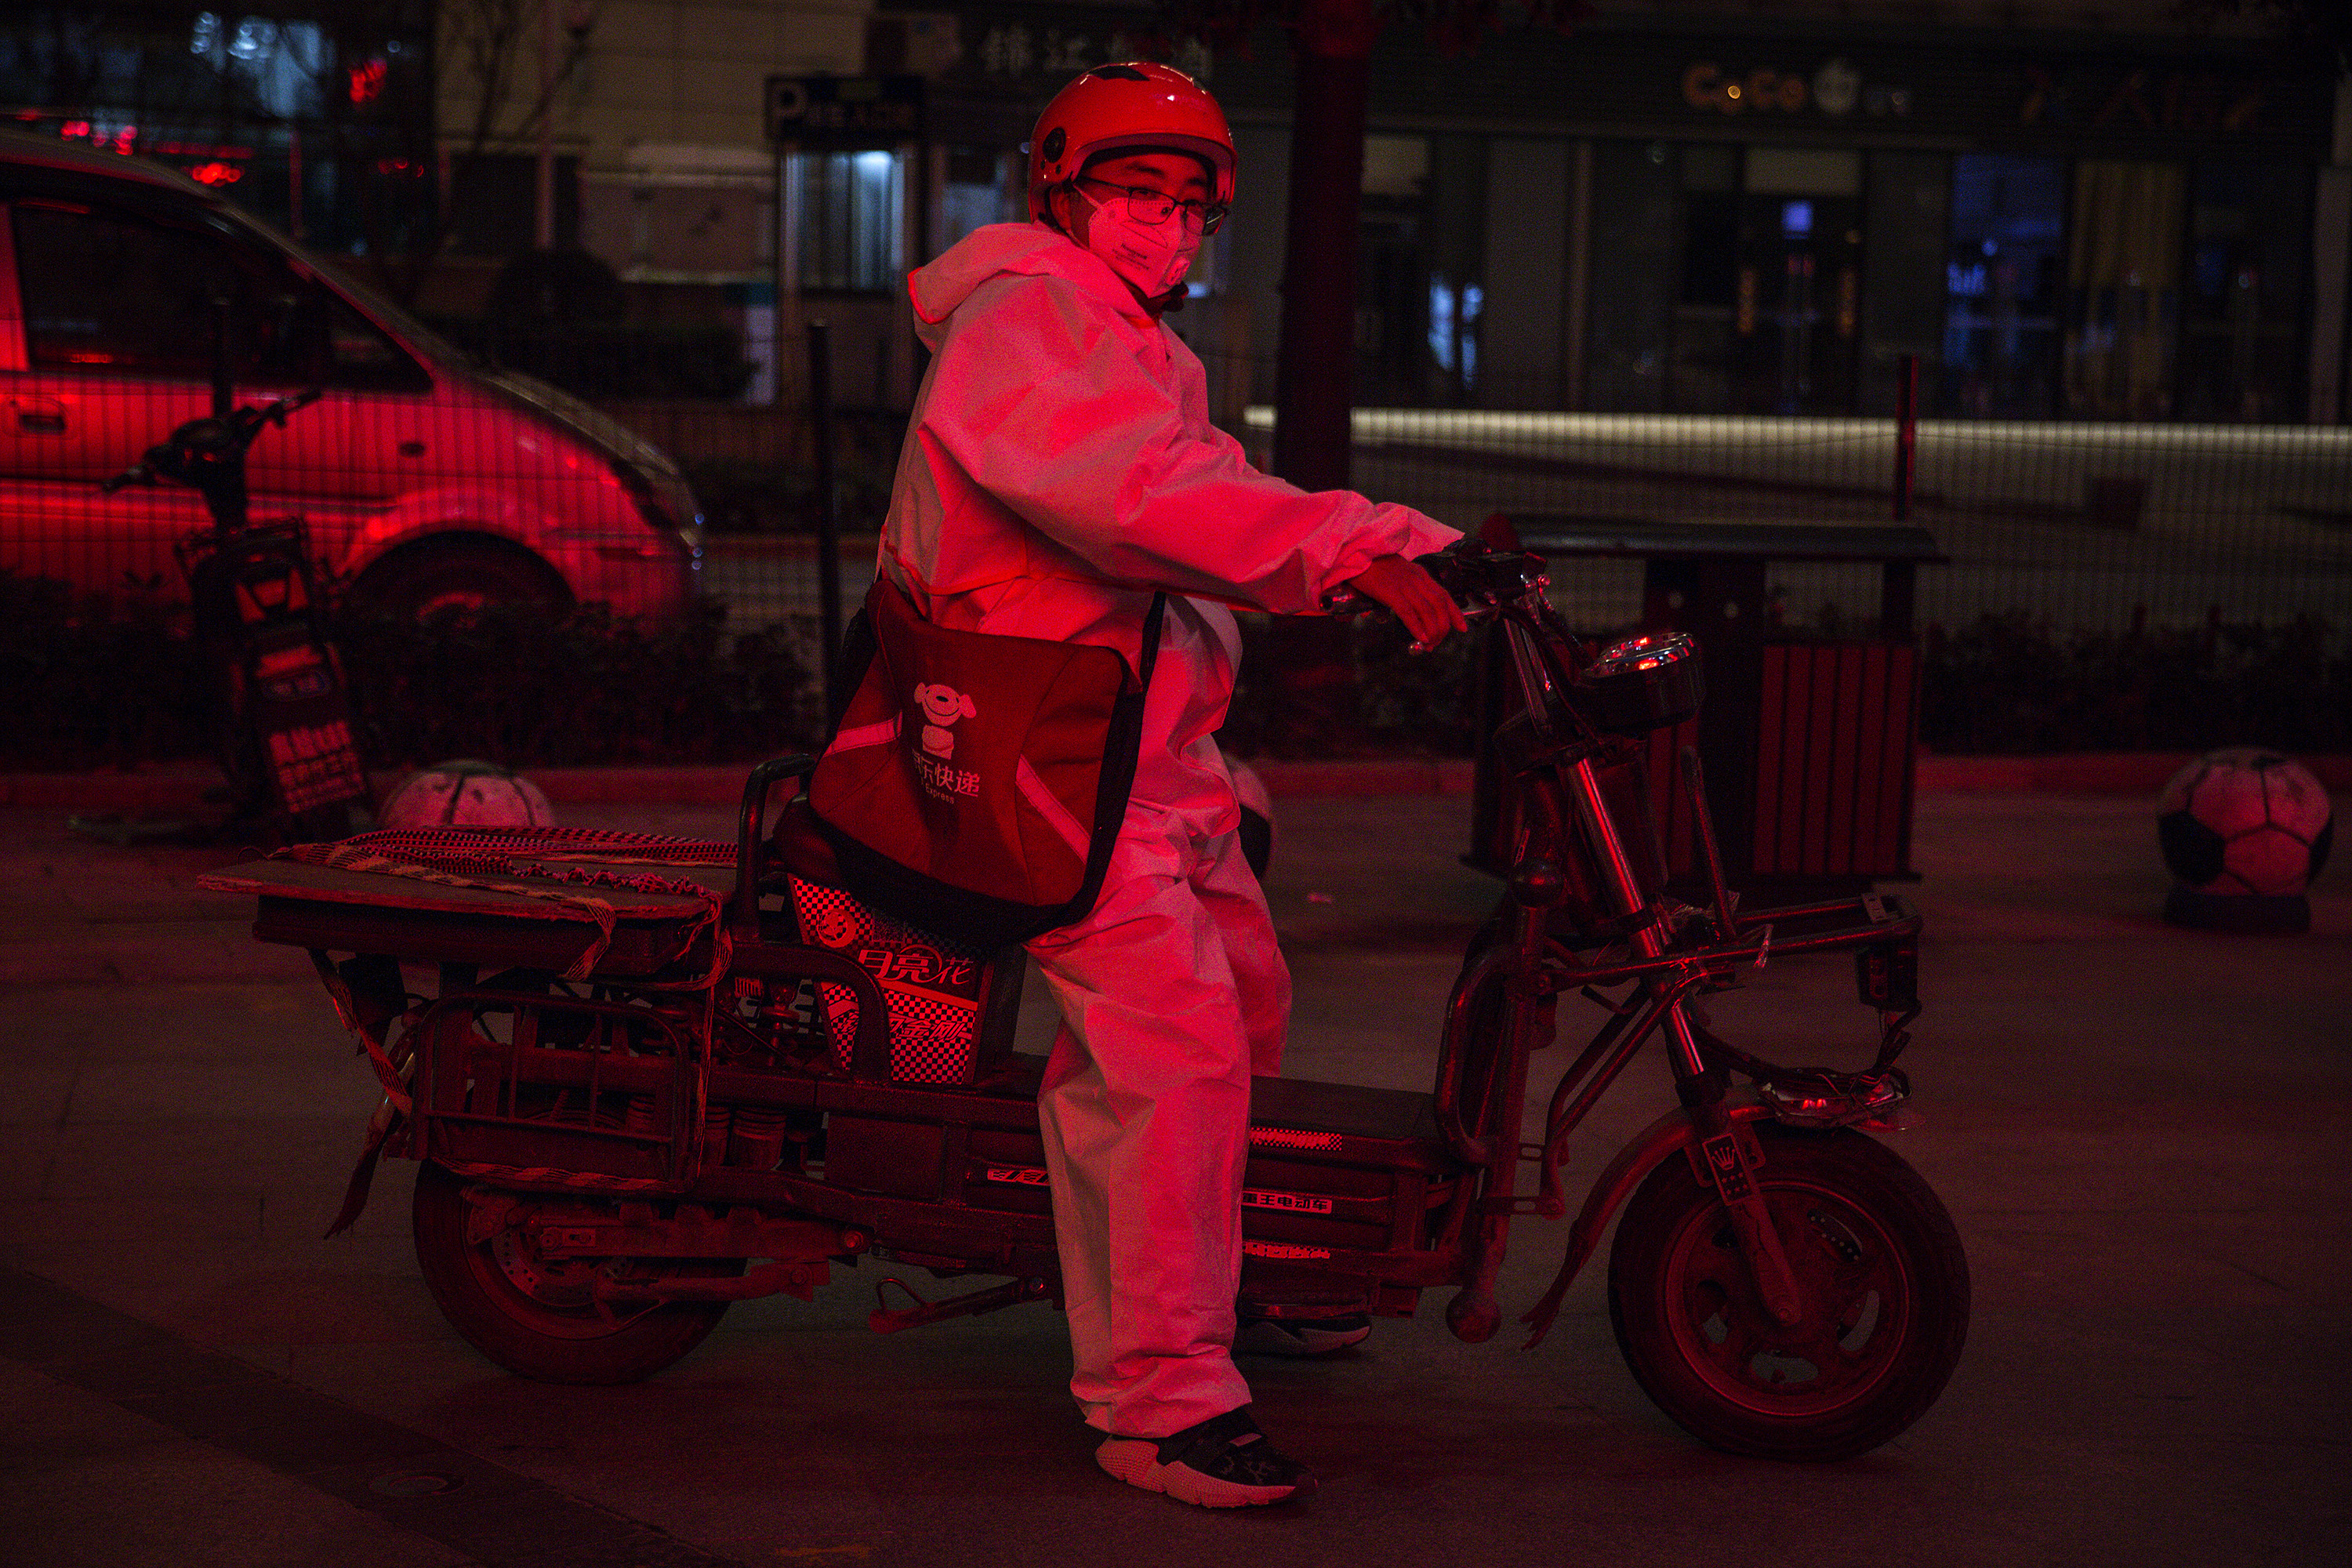 A delivery driver wears a protective mask and suit as he delivers packages on Saturday in Wuhan.